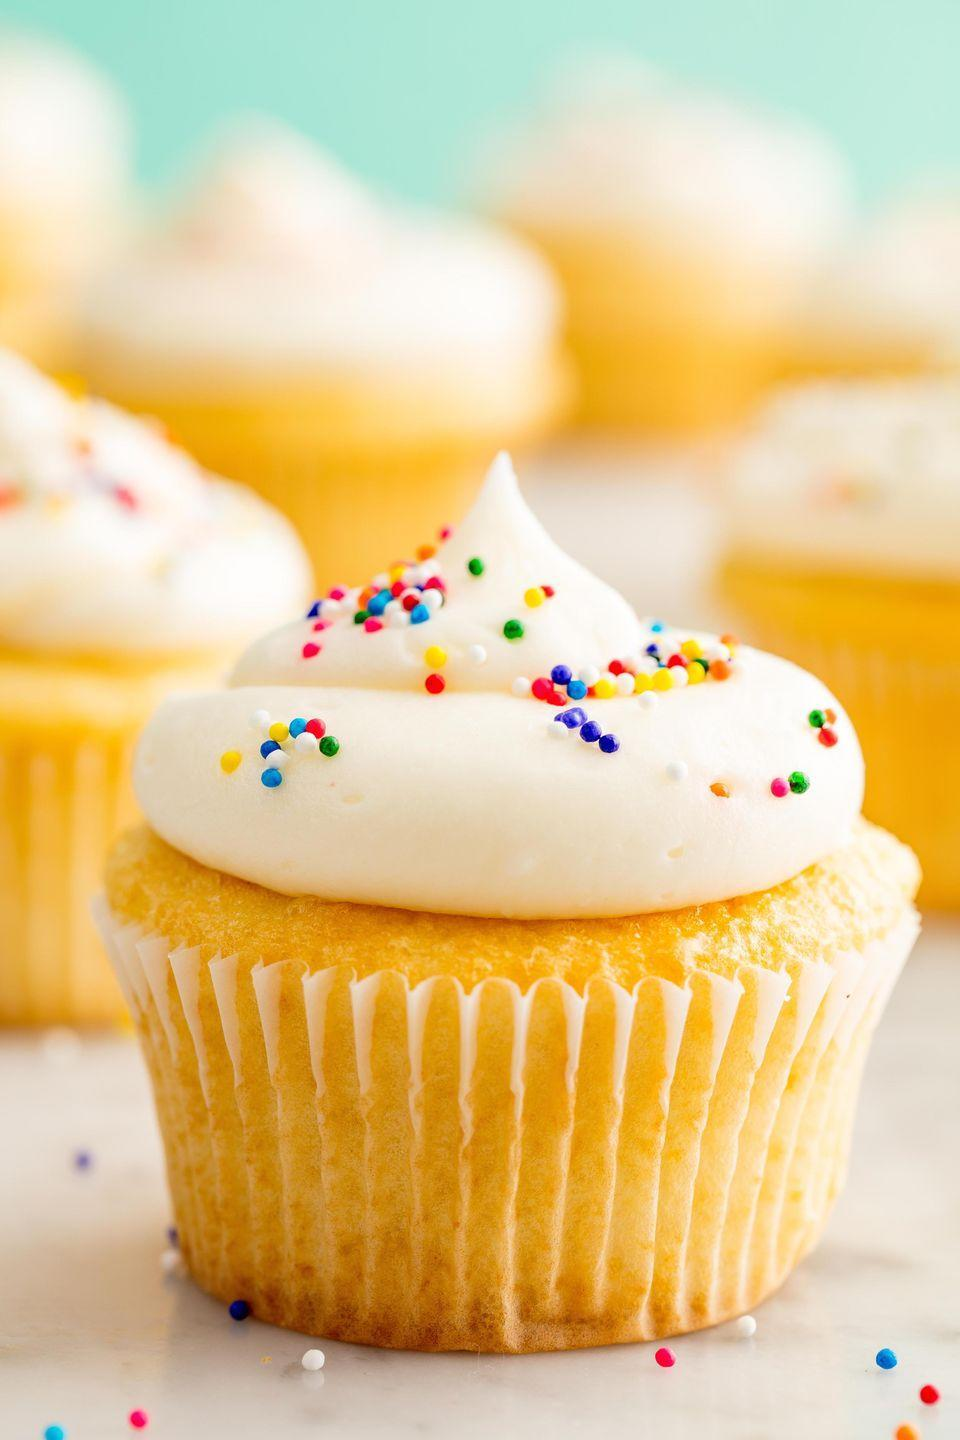 """<p>If you need something simple, these are your guy.</p><p>Get the recipe from <a href=""""https://www.delish.com/cooking/recipe-ideas/recipes/a58184/perfect-vanilla-cupcakes-recipe/"""" rel=""""nofollow noopener"""" target=""""_blank"""" data-ylk=""""slk:Delish"""" class=""""link rapid-noclick-resp"""">Delish</a>.</p>"""